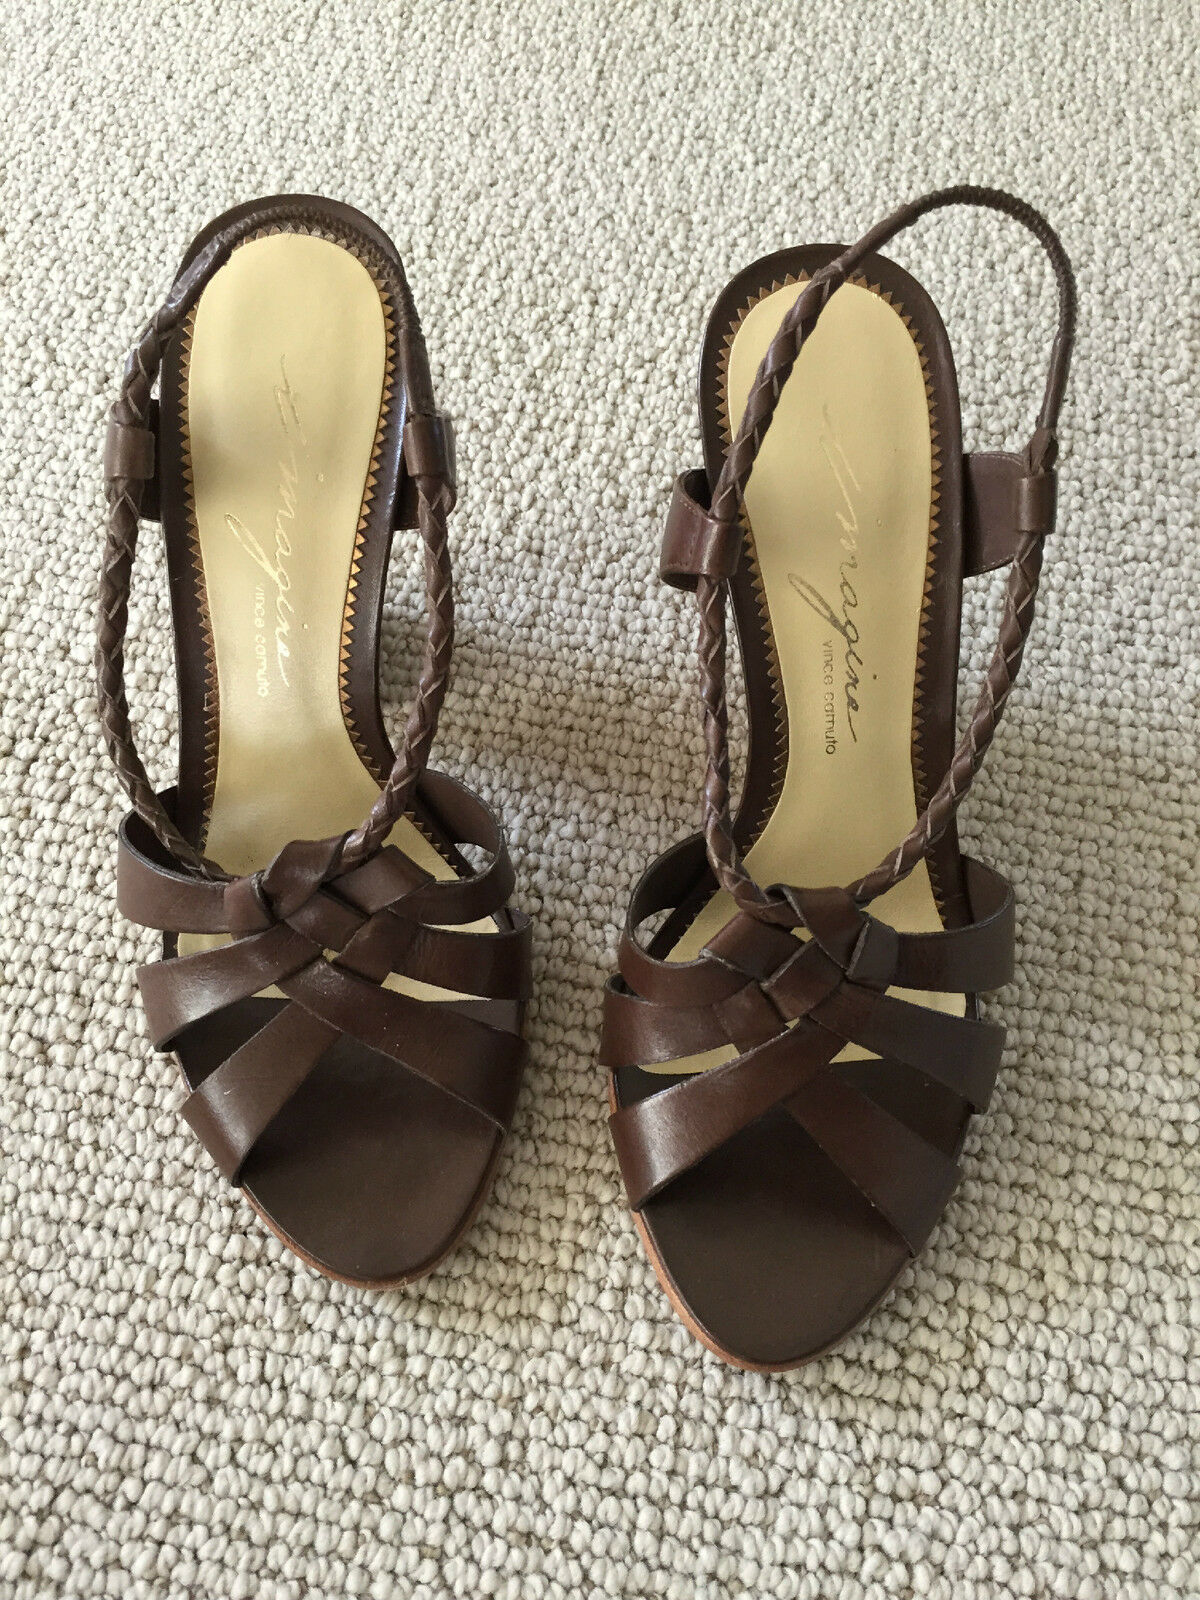 Vince Camuto Imagine brown leather strappy stacked heel sandal shoes size 5.5